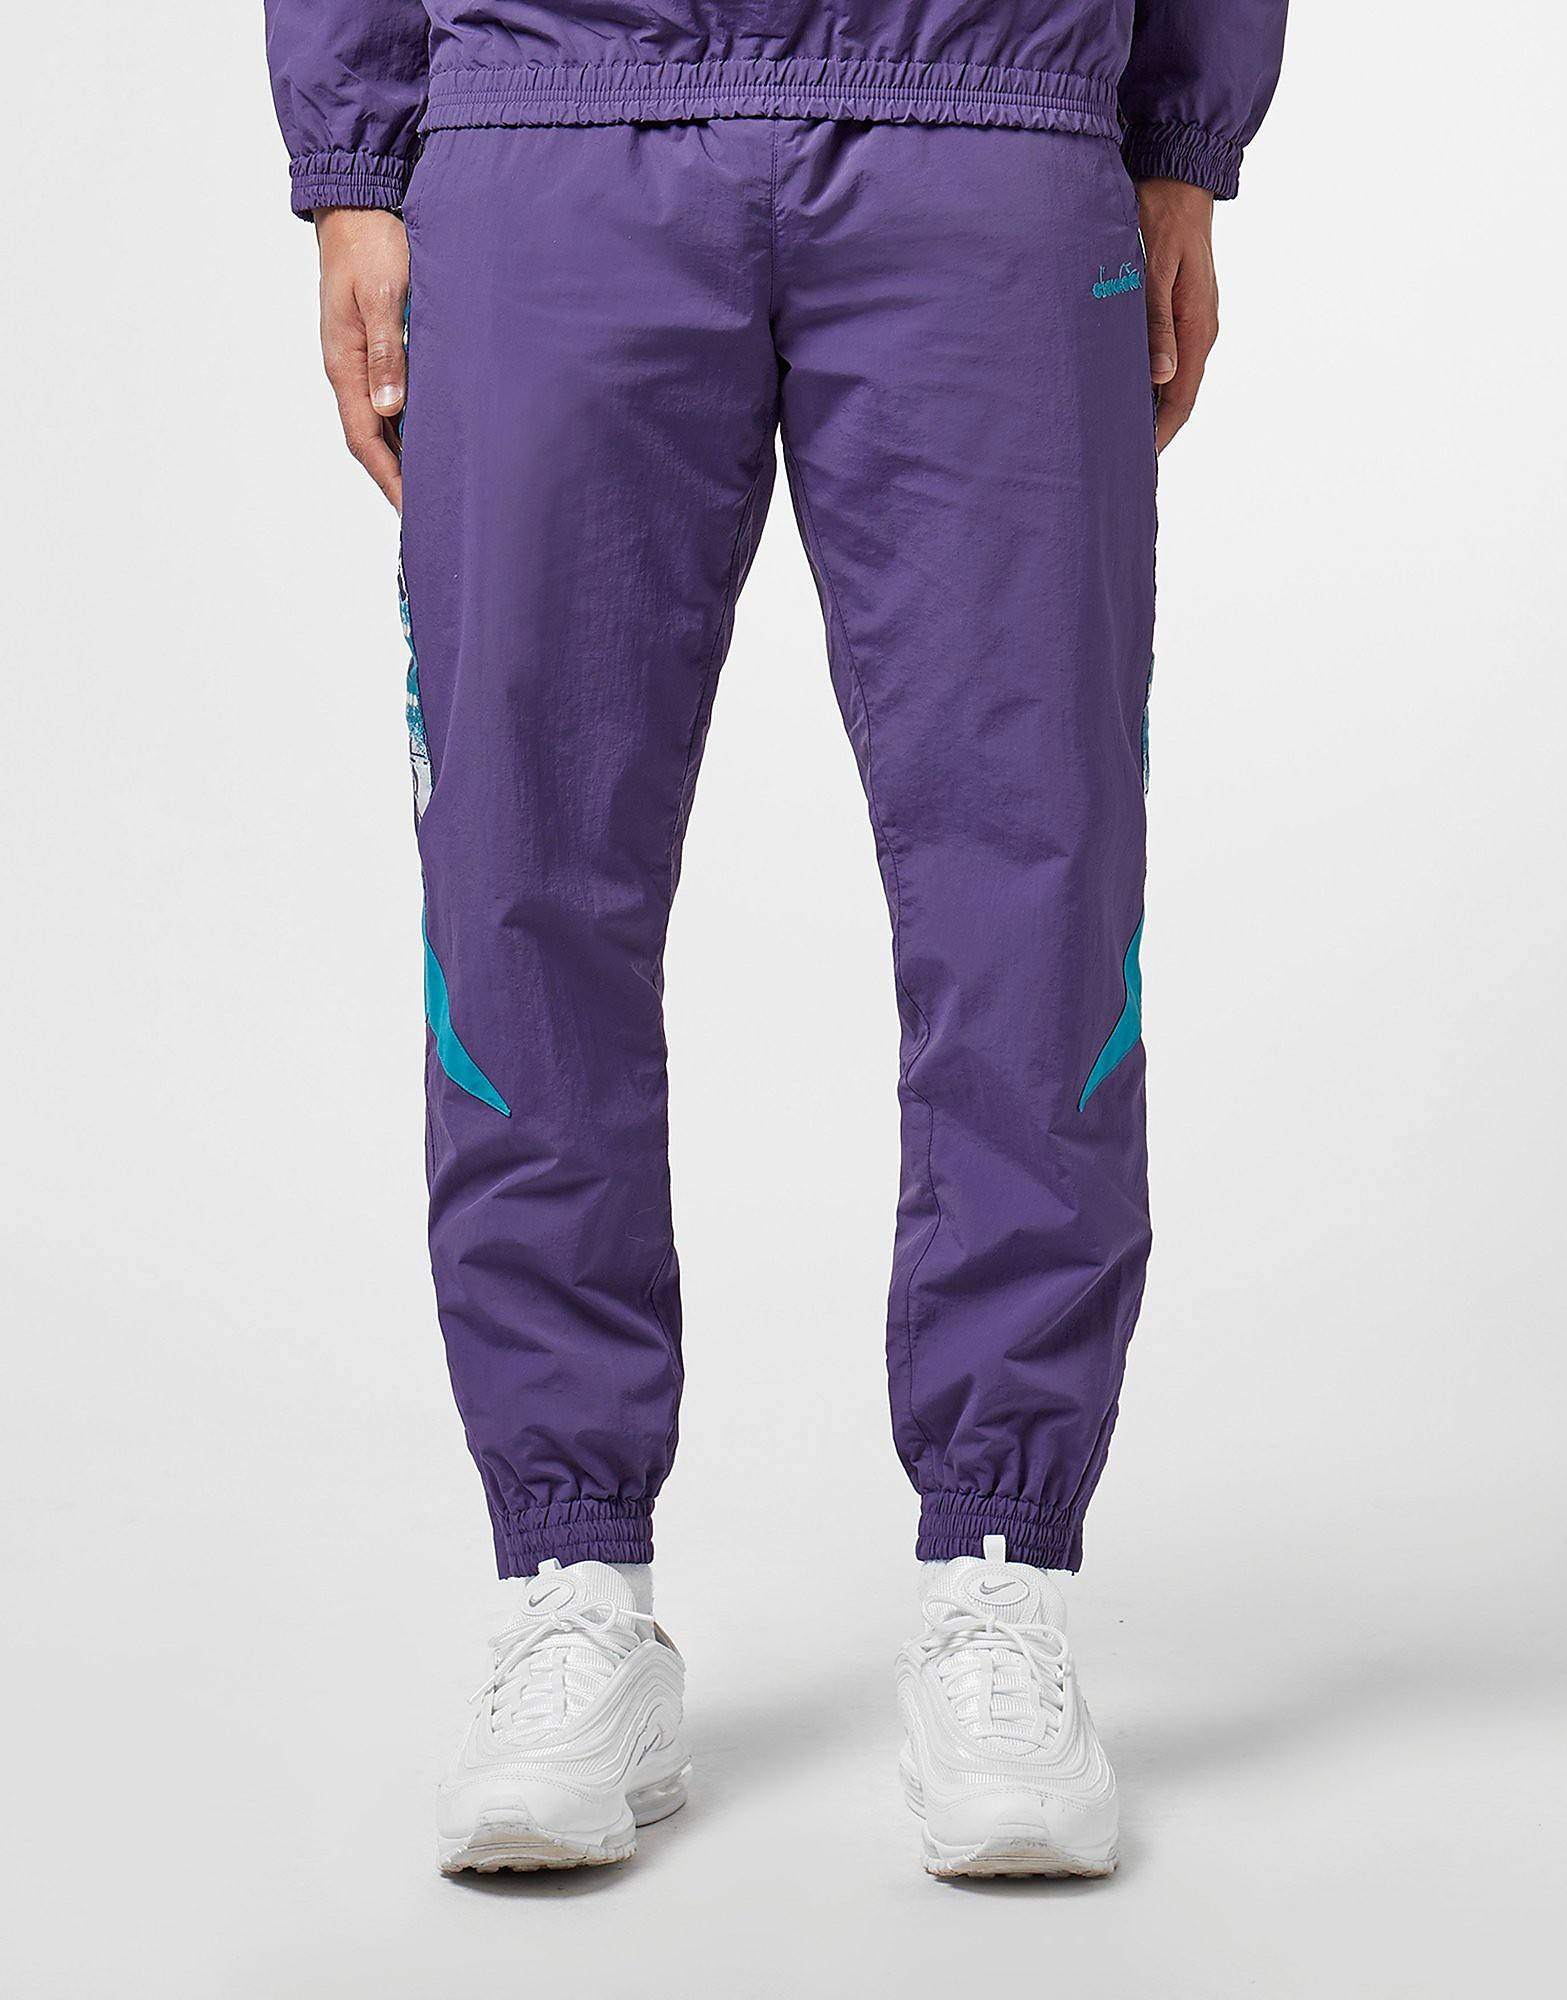 Diadora MVB Shell Cuffed Track Pants - Online Exclusive